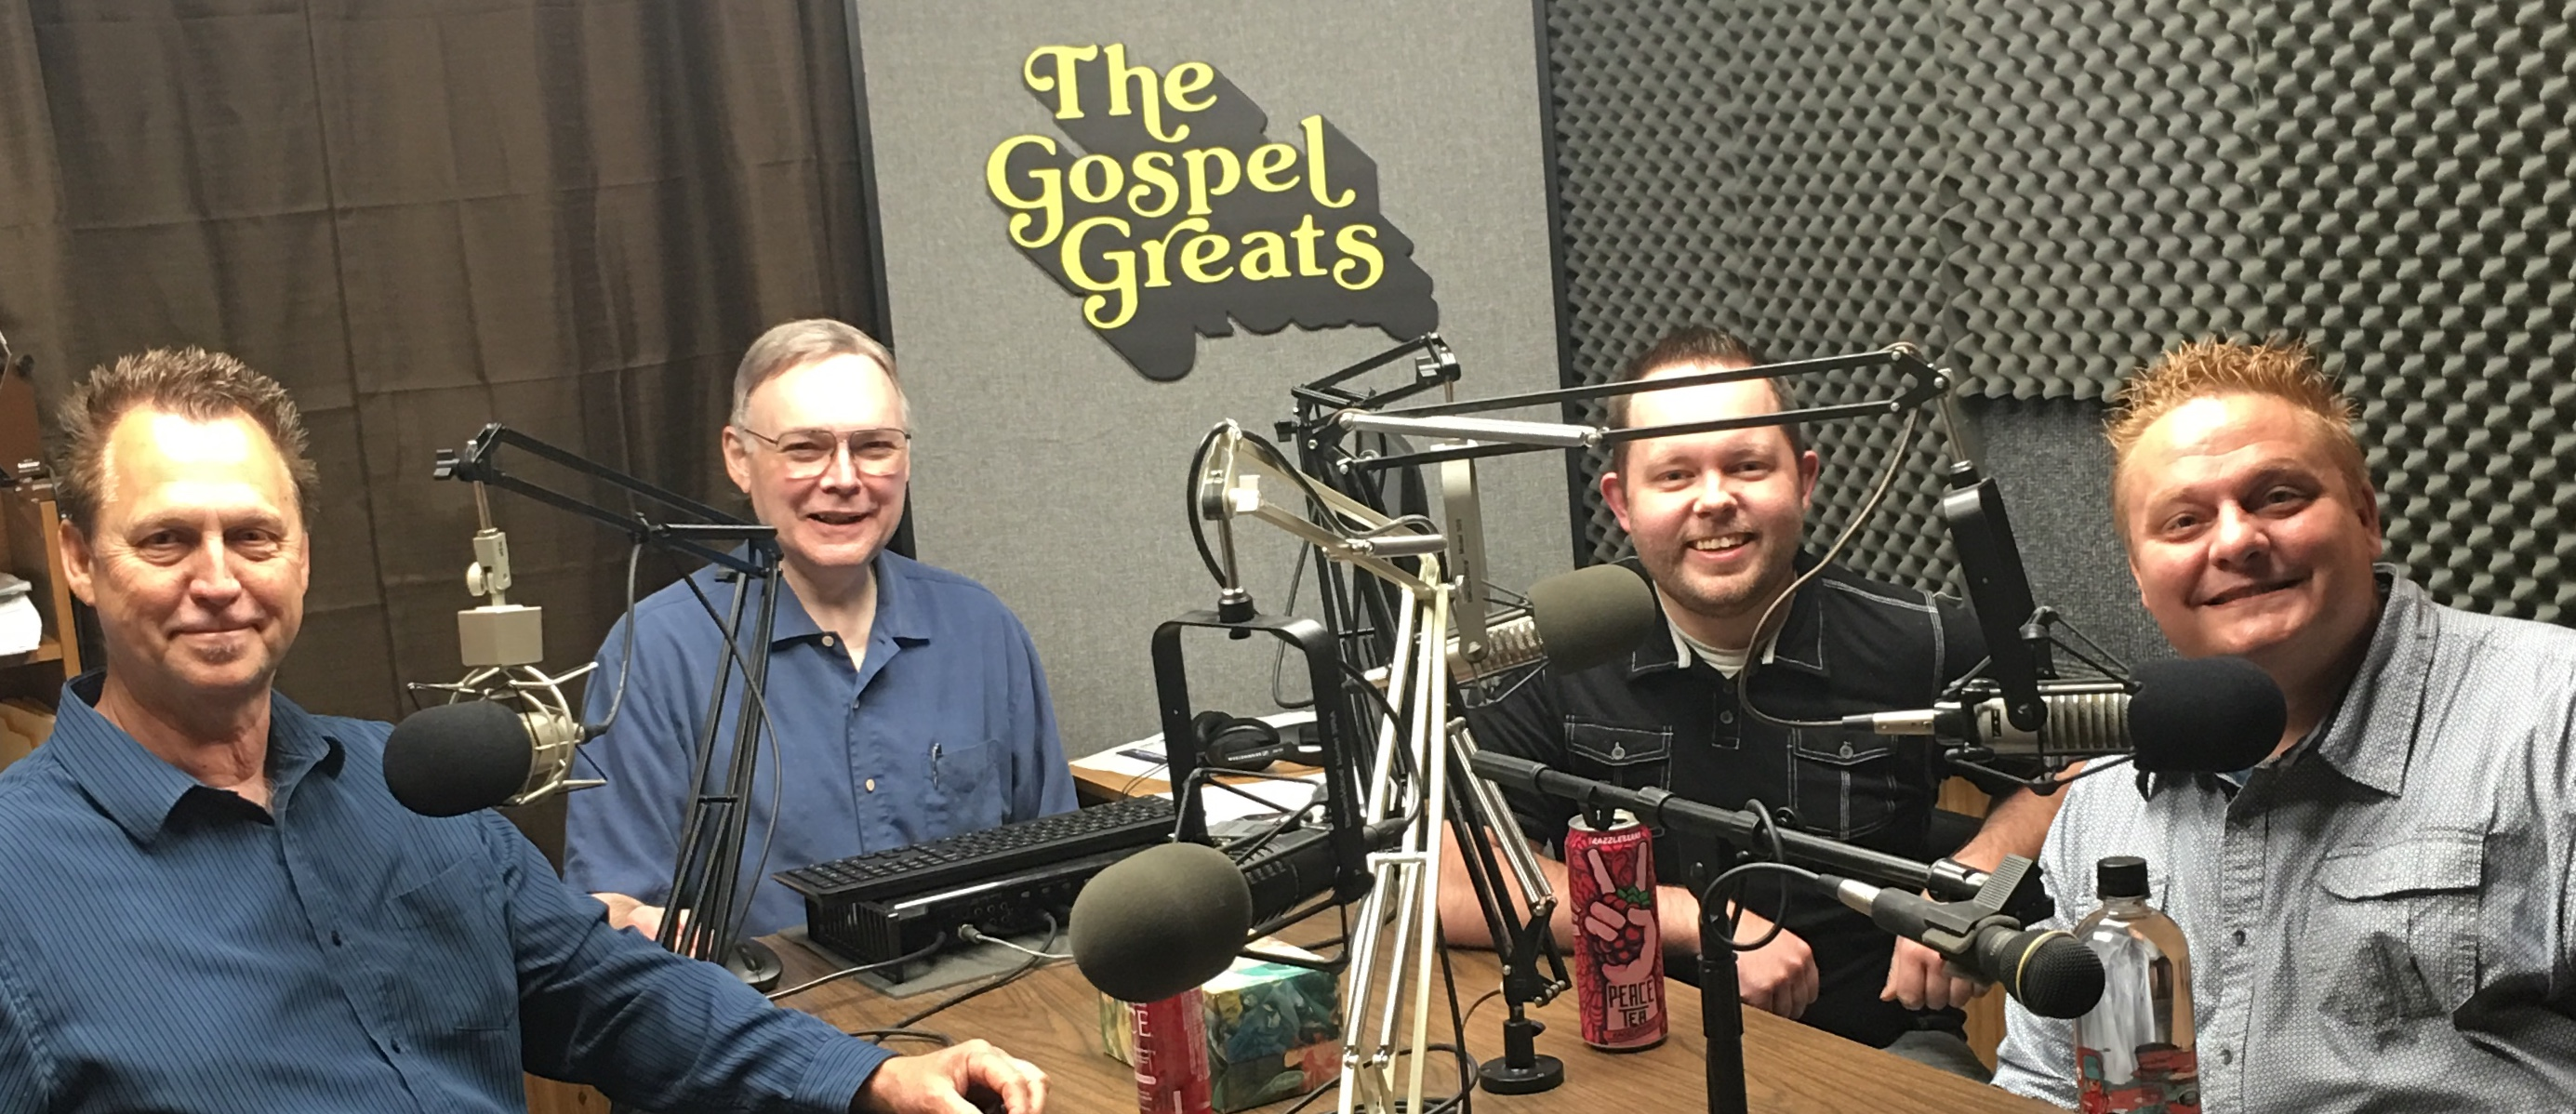 Steve Hess & Southern Salvation Featured on 'The Gospel Greats with Paul Heil'